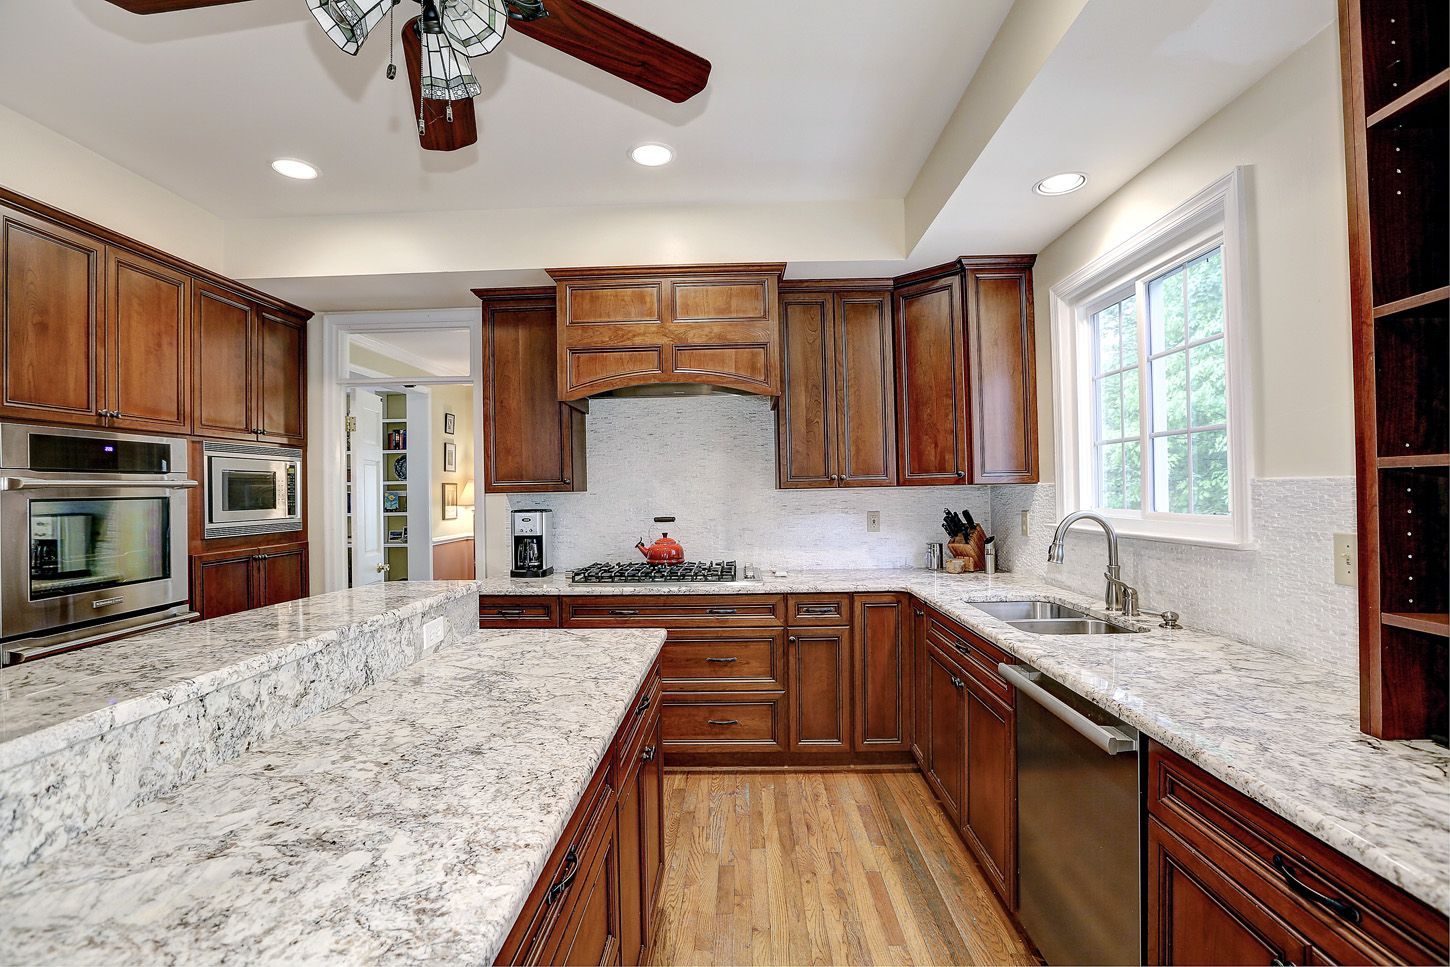 kitchen cabinet refacing gallery refacing kitchen cabinets cabinet refacing transitional kitchen on kitchen cabinets refacing id=89831